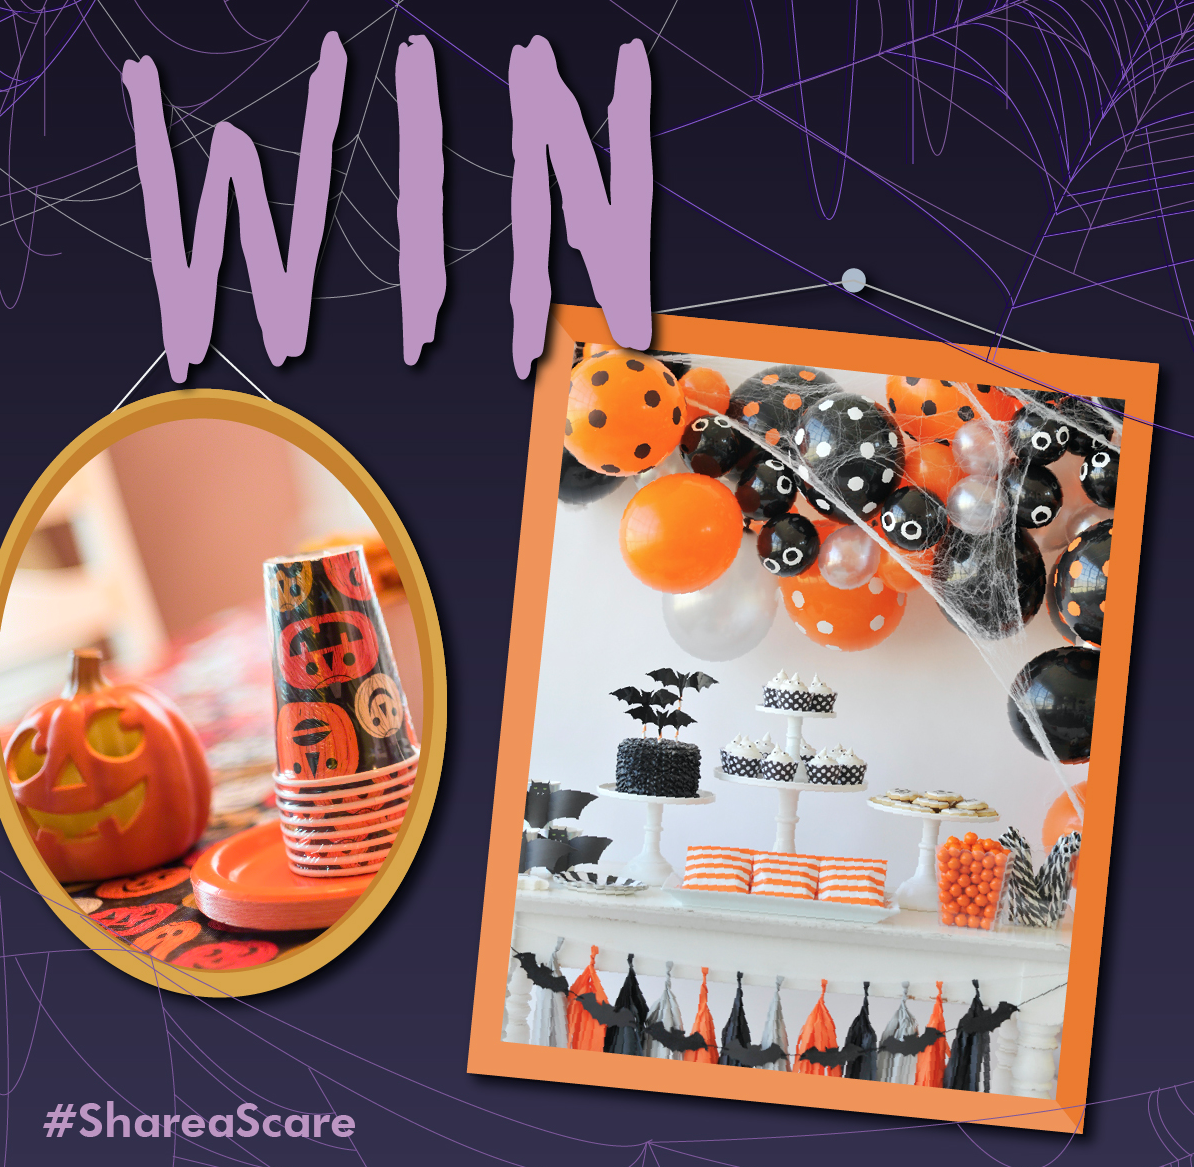 COMPETITION: Win a Halloween Party Pack at Citywest Shopping Centre!